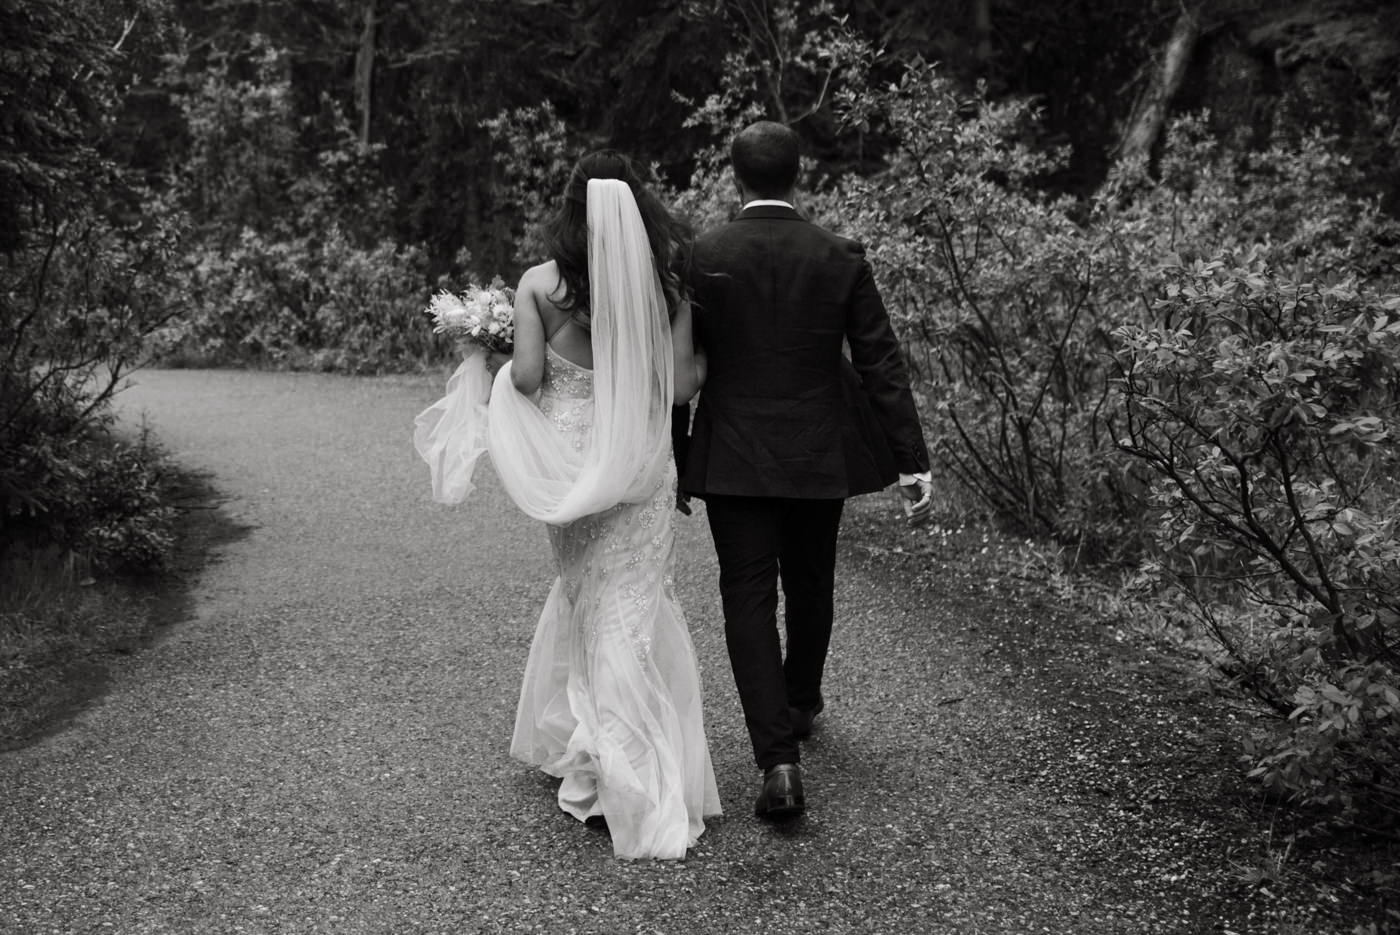 Bride and groom walking on path in mountains